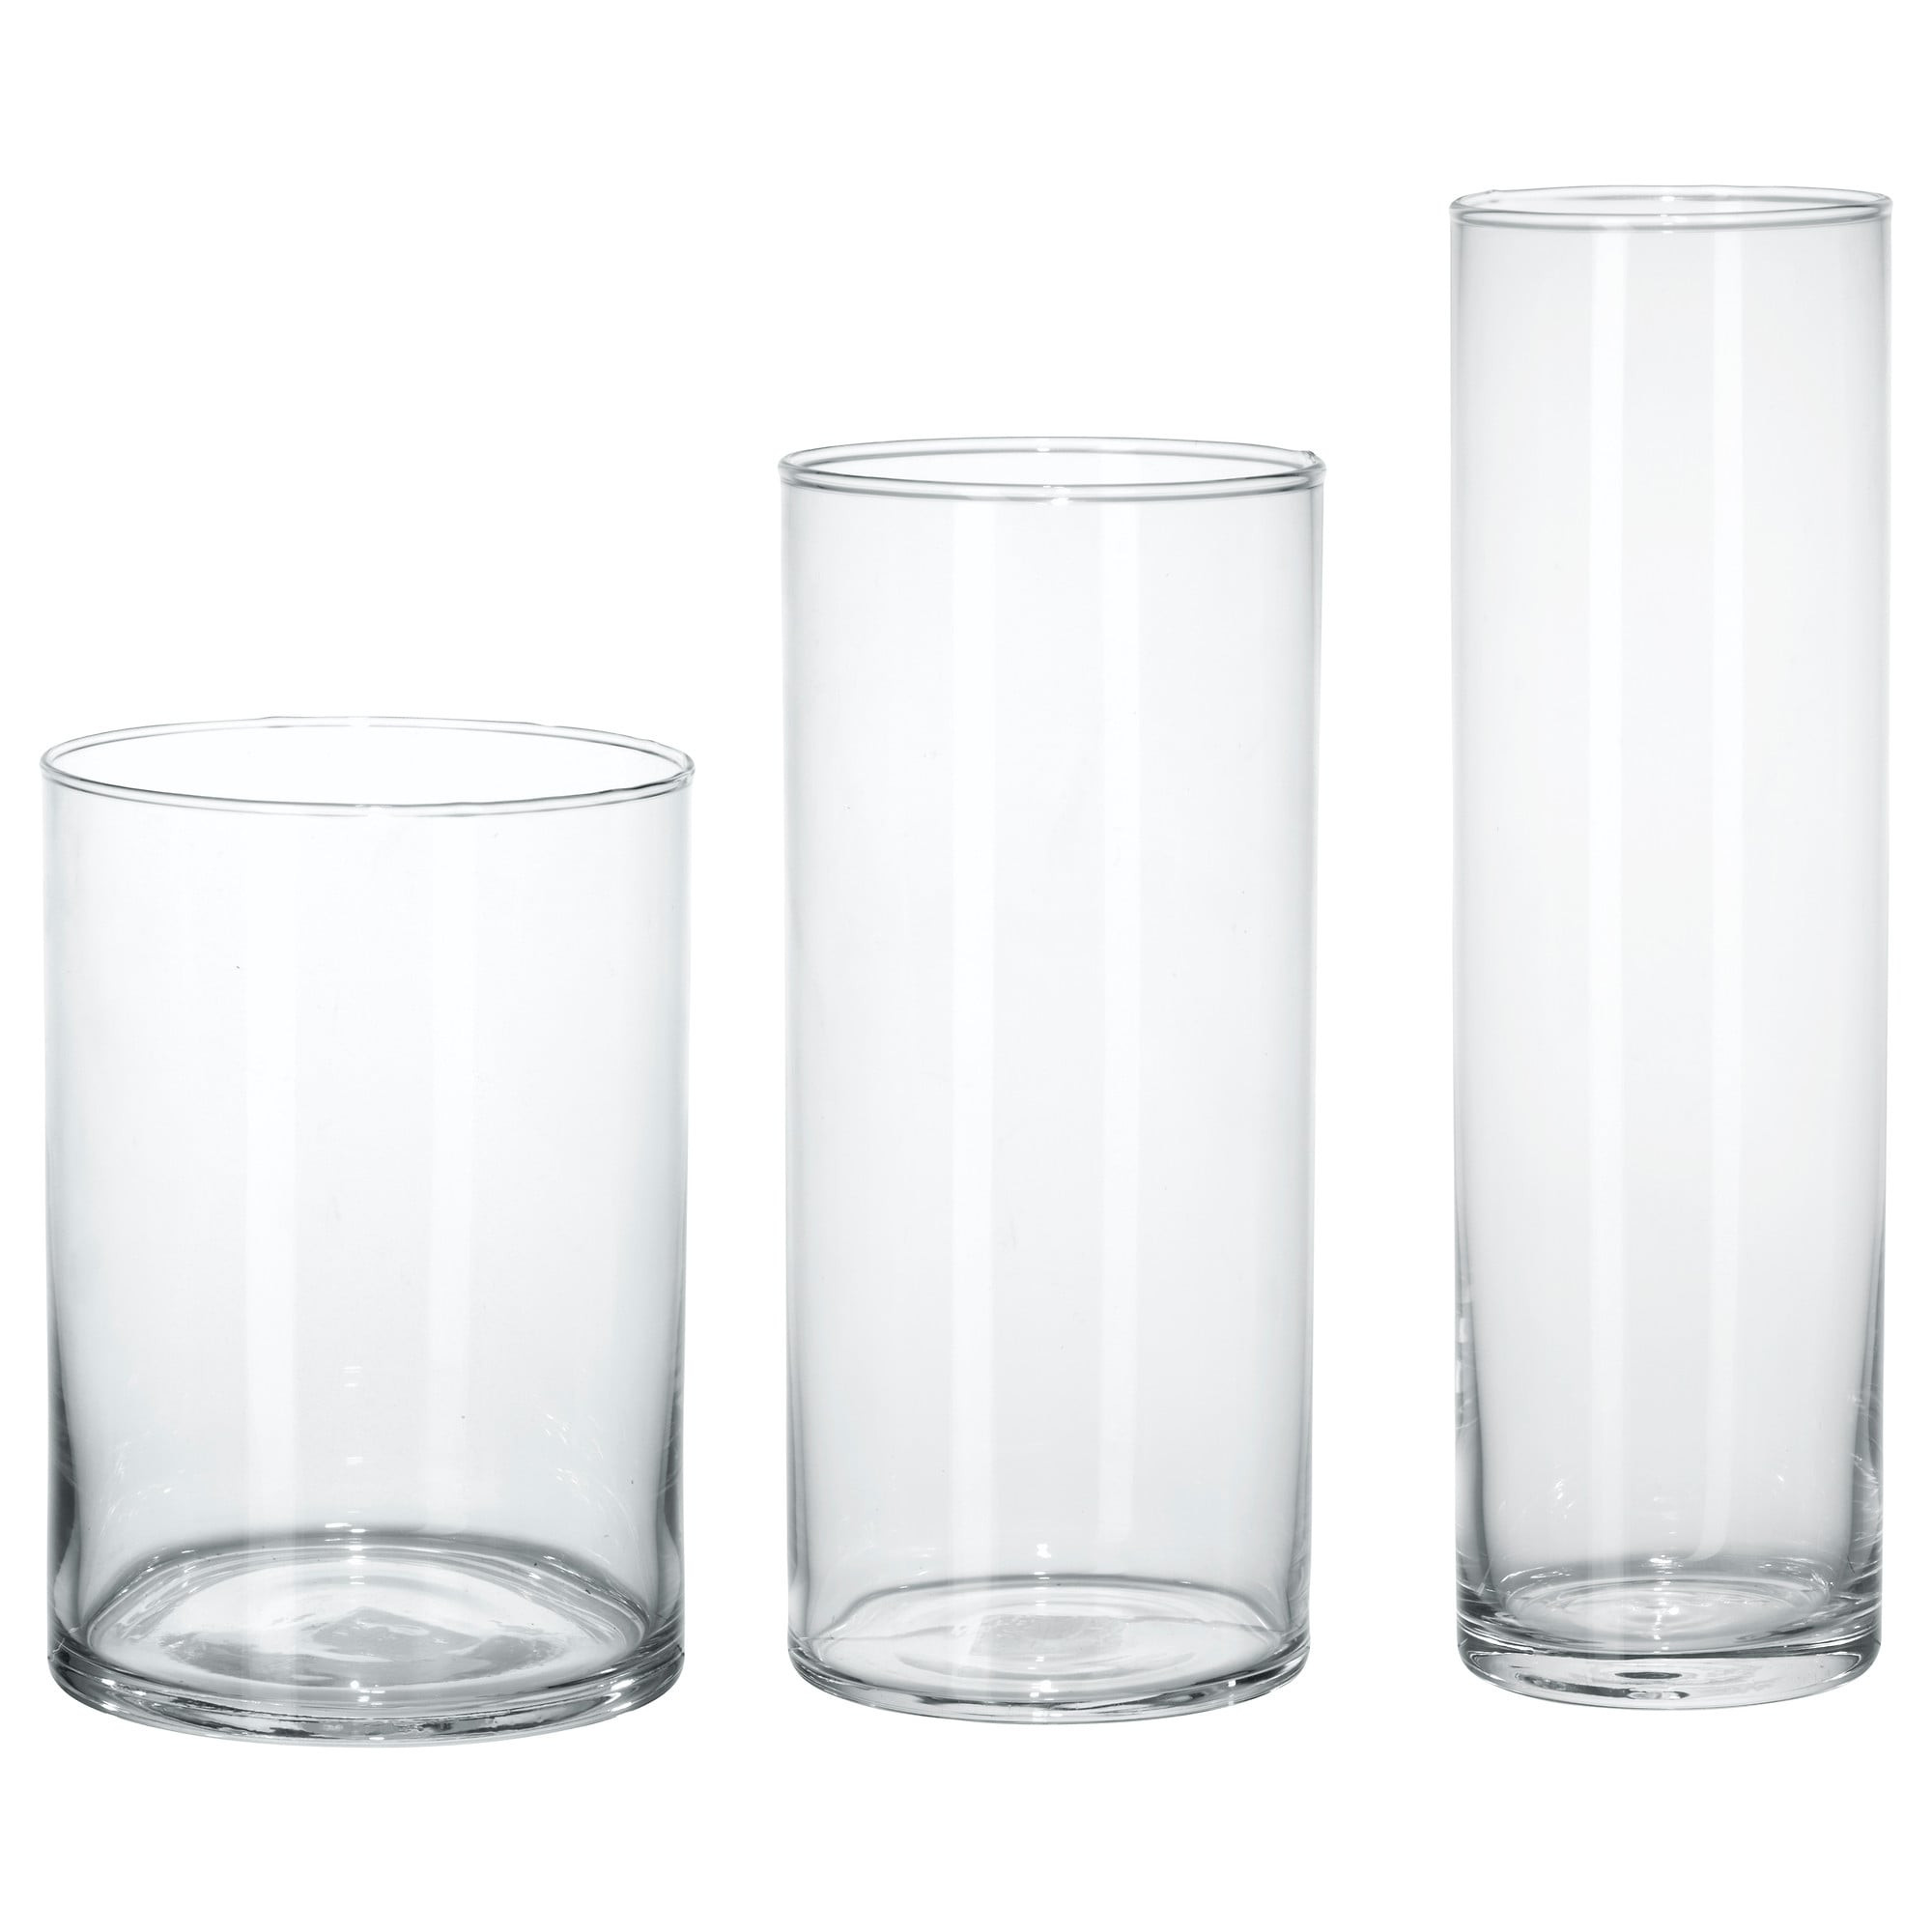 tall crystal vases for centerpieces of cylinder vase set of 3 ikea regarding english frana§ais